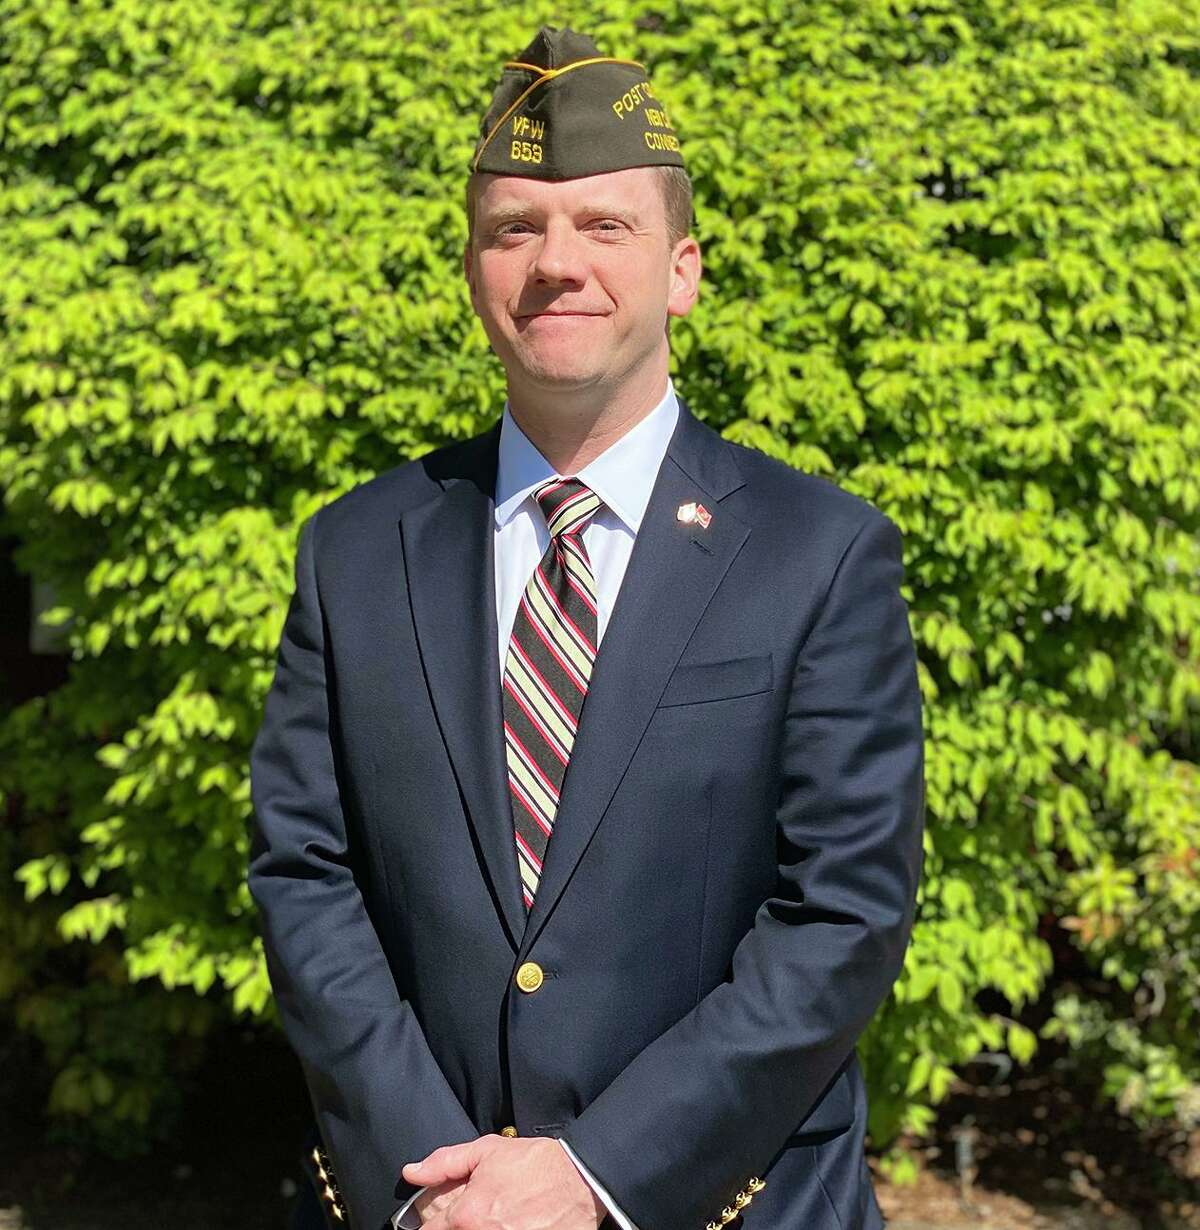 Russell Kimes III, assistant fire chief and New Canaan VFW Post commander, was named the town's director of Emergency Management Tuesday, Sept. 8.